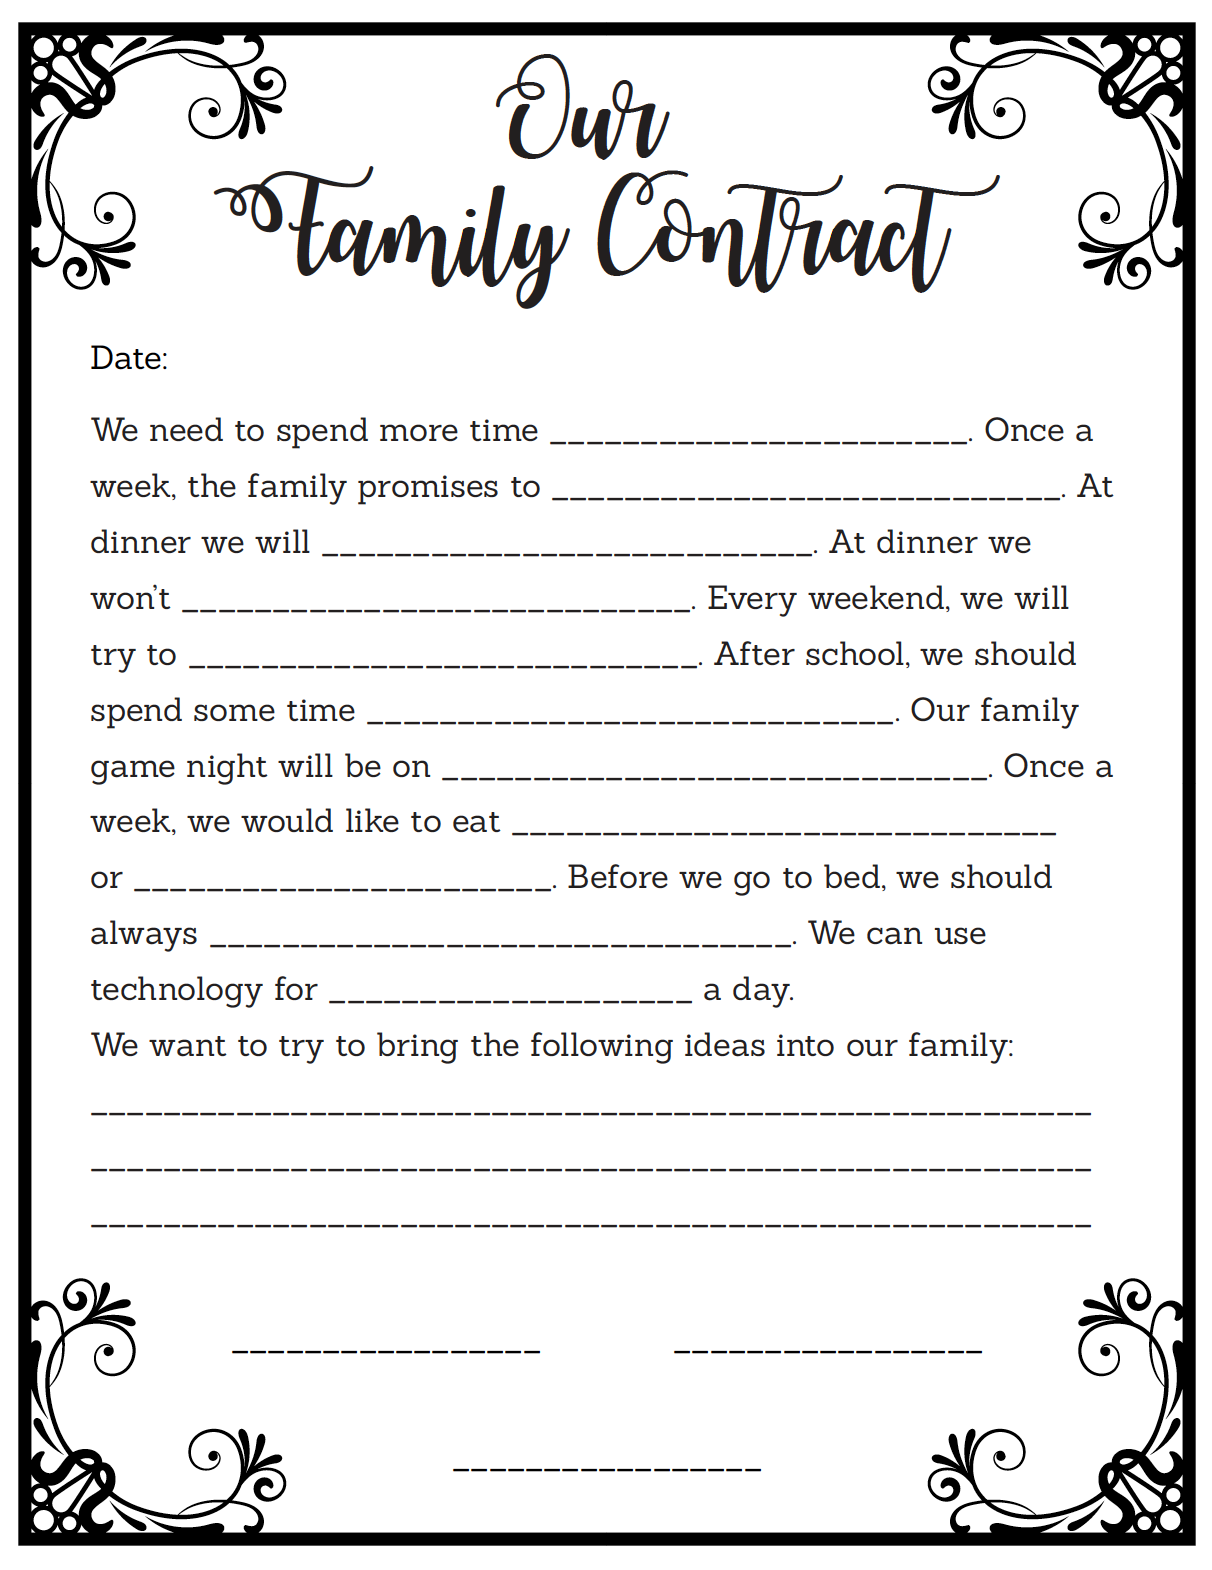 Free Family Contract Printable Fill In The Blank Contract